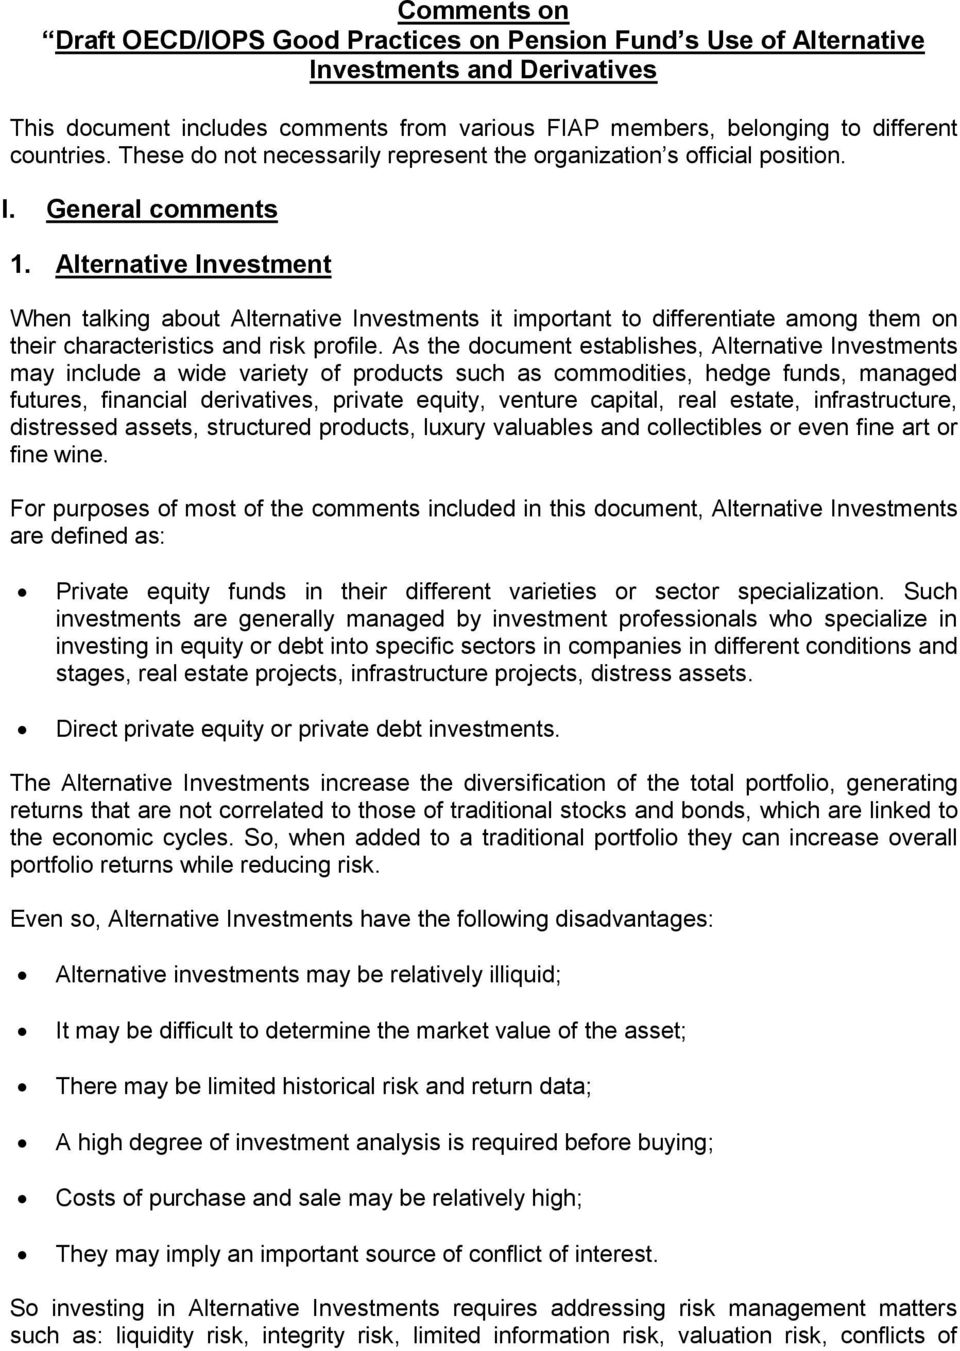 Alternative Investment When talking about Alternative Investments it important to differentiate among them on their characteristics and risk profile.